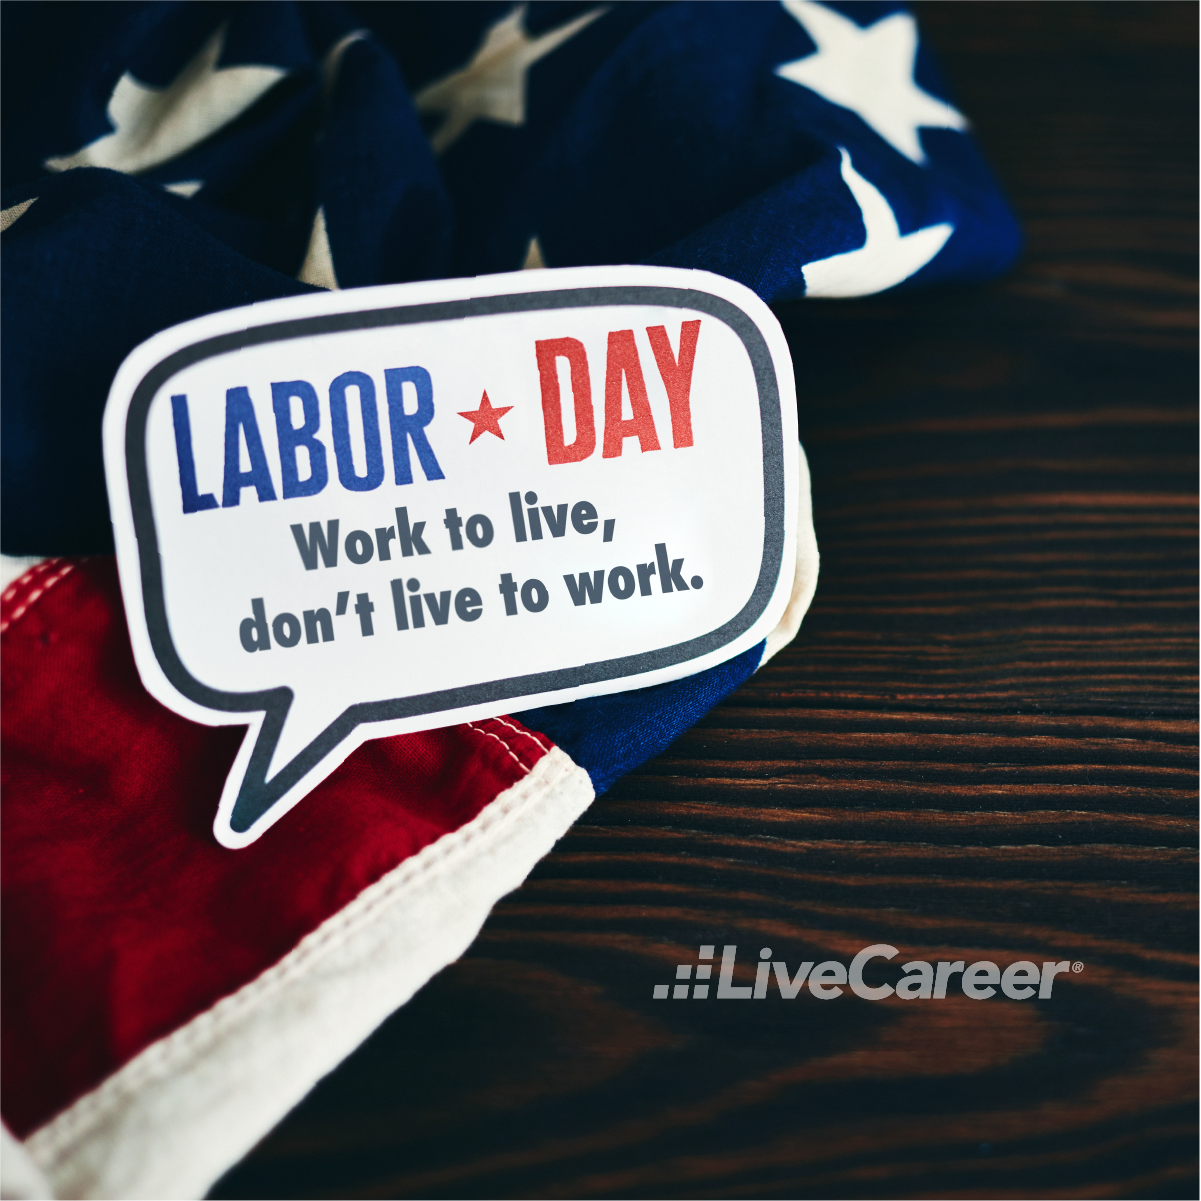 Enjoy a welldeserved break for LaborDay! Cover letter